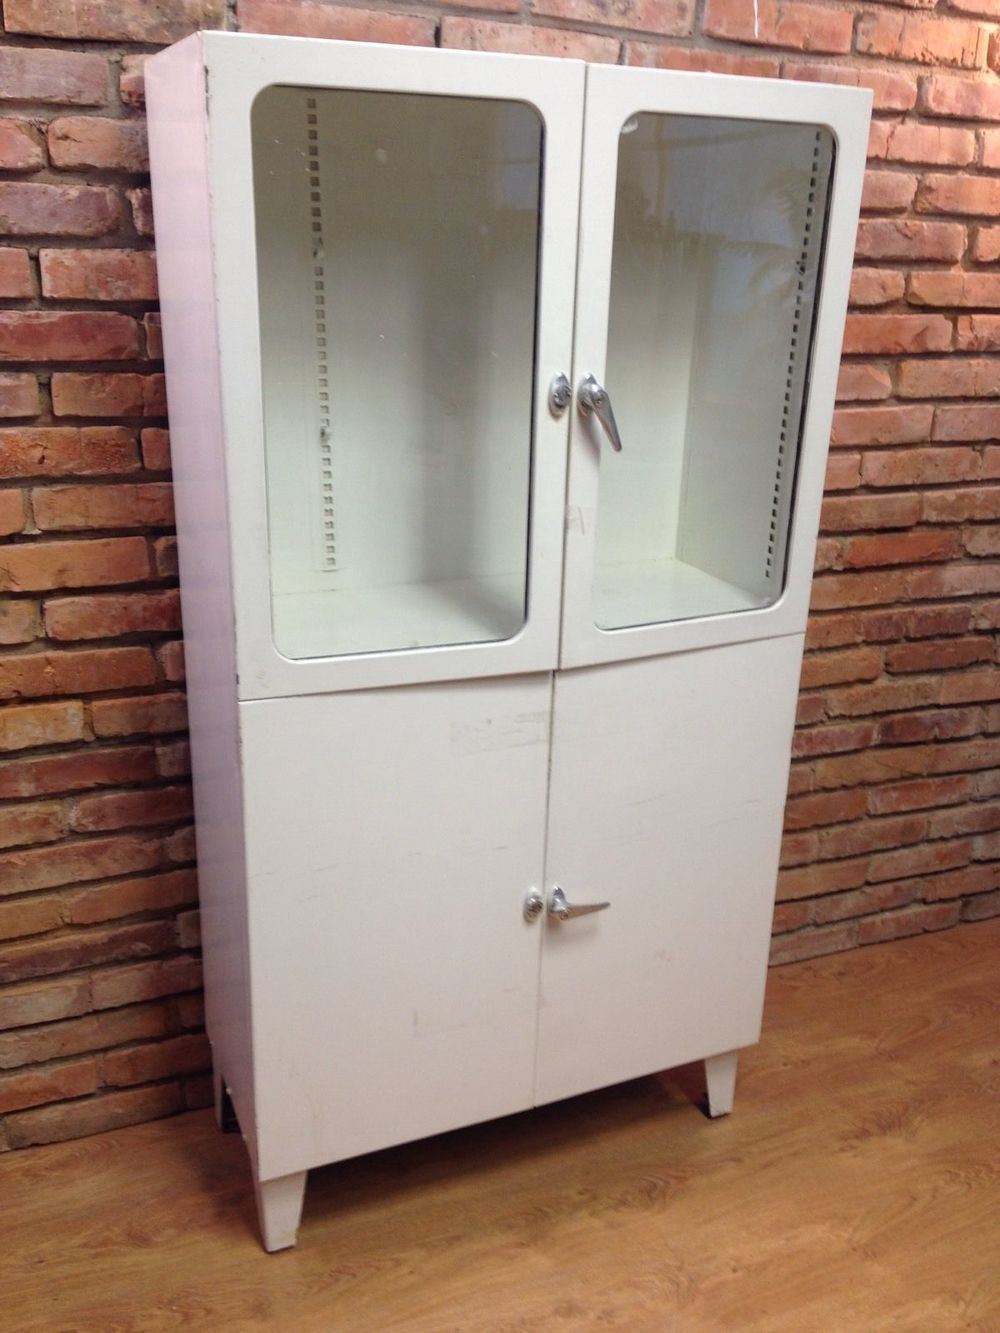 Vintage Medical Cabinet - could you use it as a pantry-type cupboard, or a place for cups and plates?